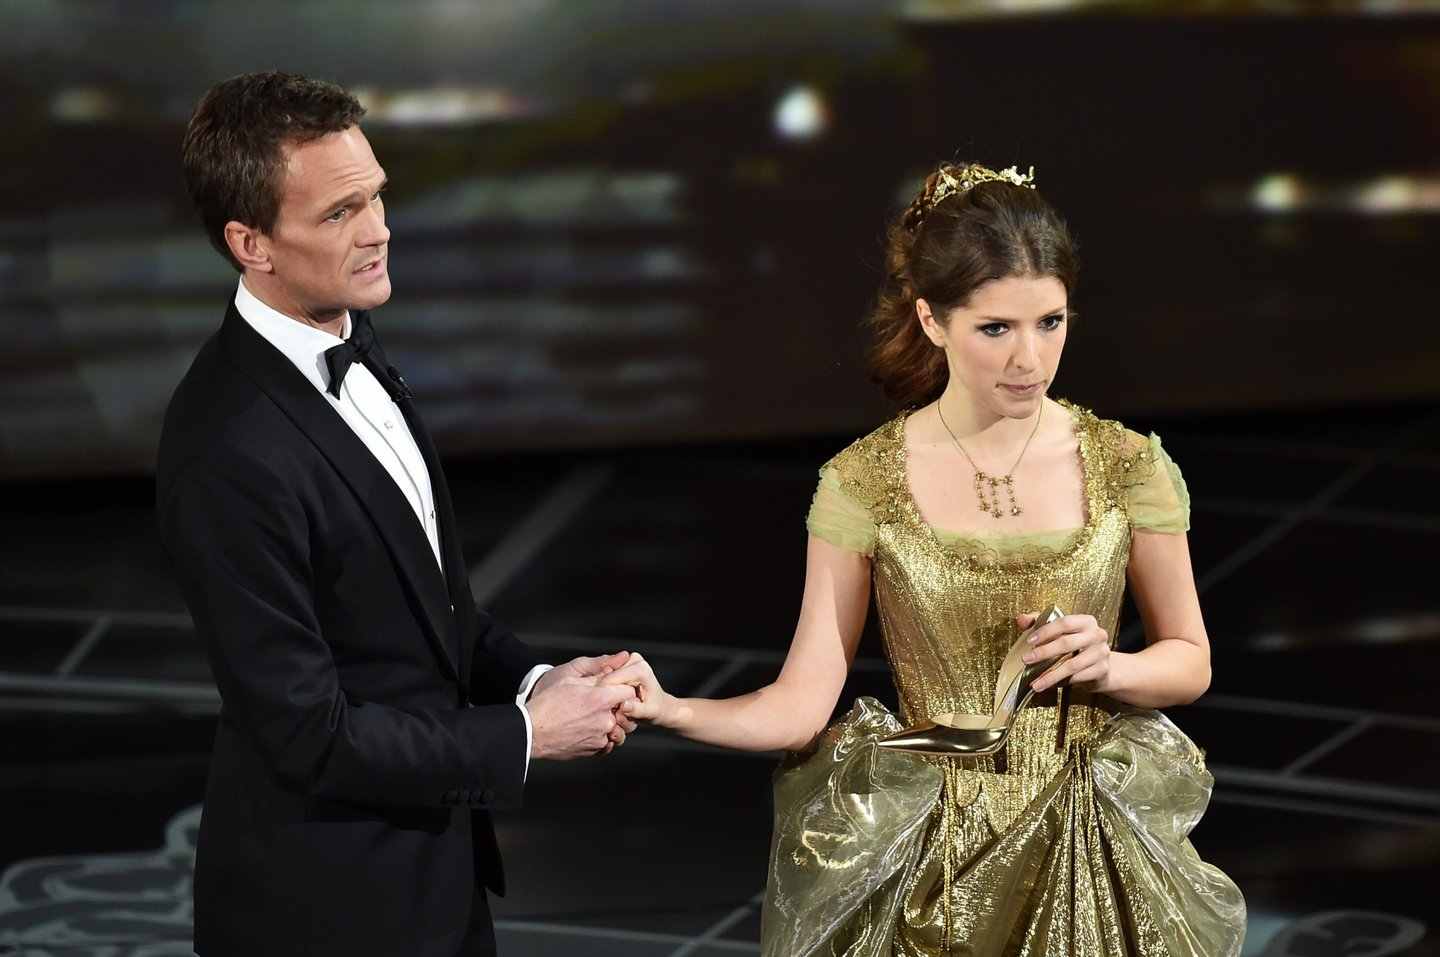 HOLLYWOOD, CA - FEBRUARY 22:  Host Neil Patrick Harris and Anna Kendrick perform onstage during the 87th Annual Academy Awards at Dolby Theatre on February 22, 2015 in Hollywood, California.  (Photo by Kevin Winter/Getty Images)